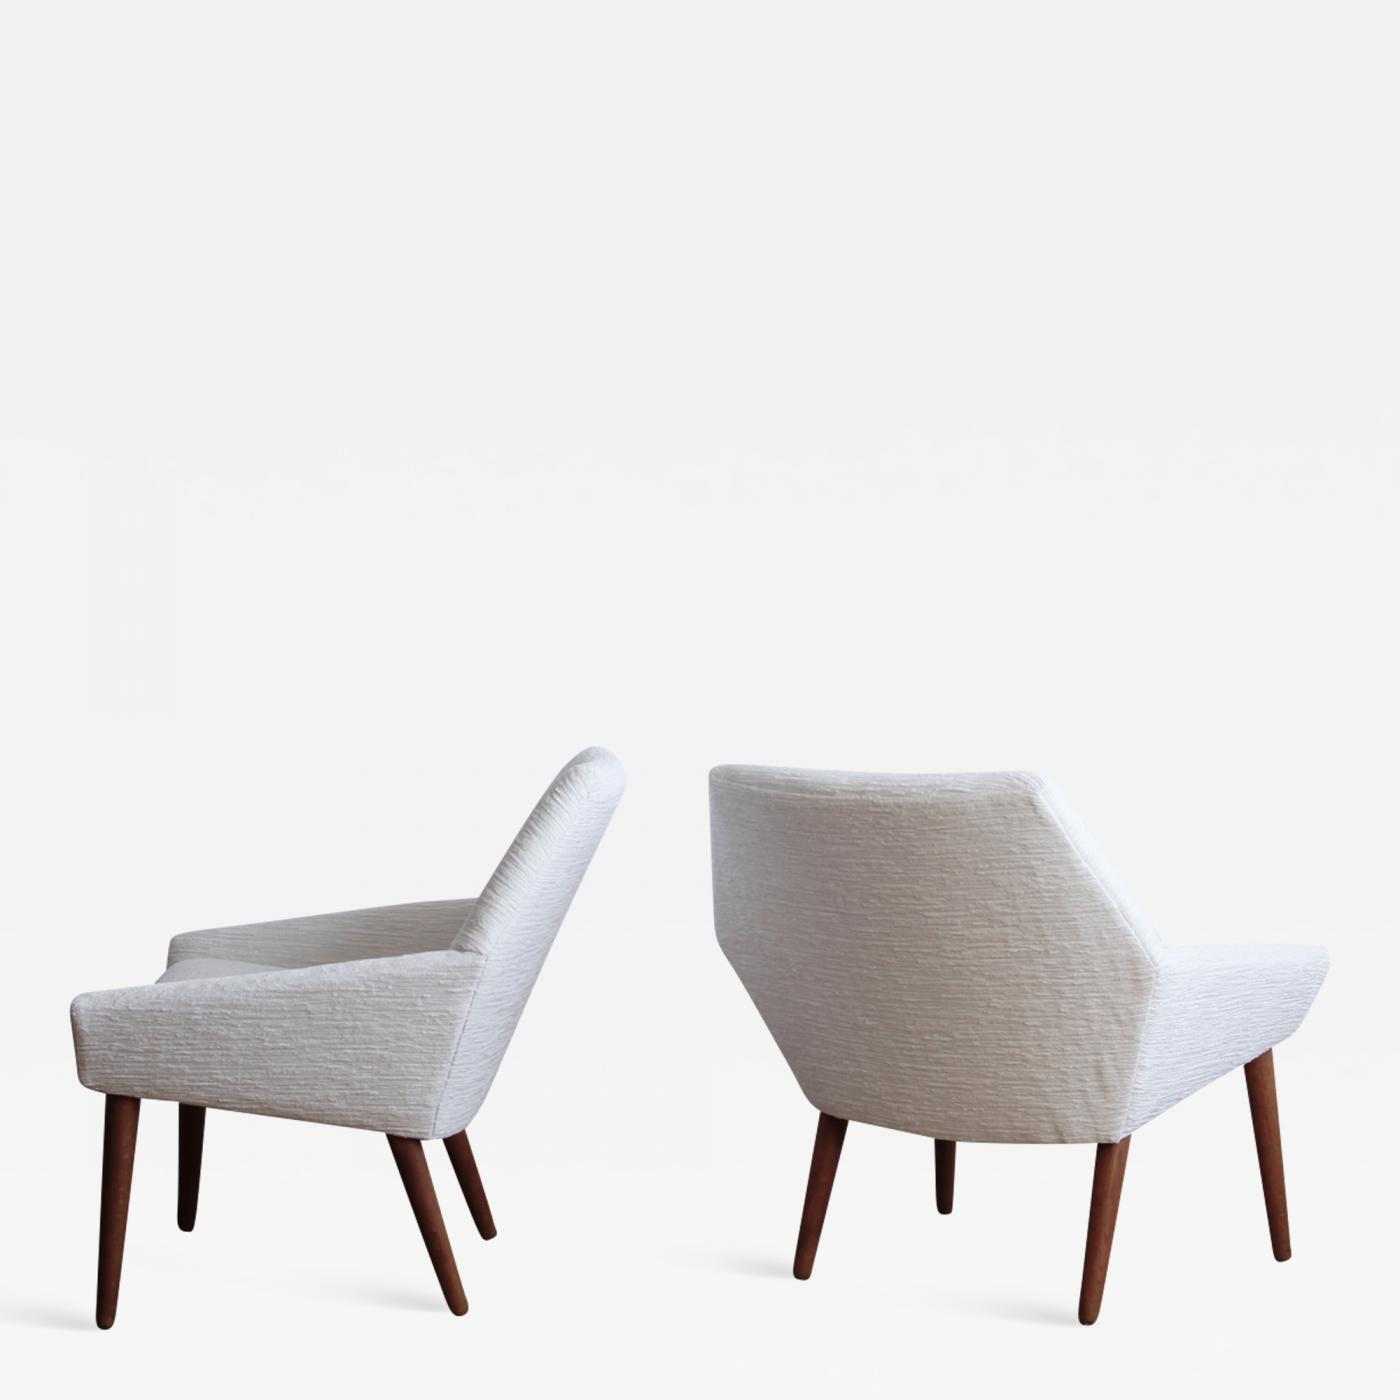 contemporary lounge chairs used kitchen poul m jessen pair of danish modern by thorsbjerg jensen for pmj